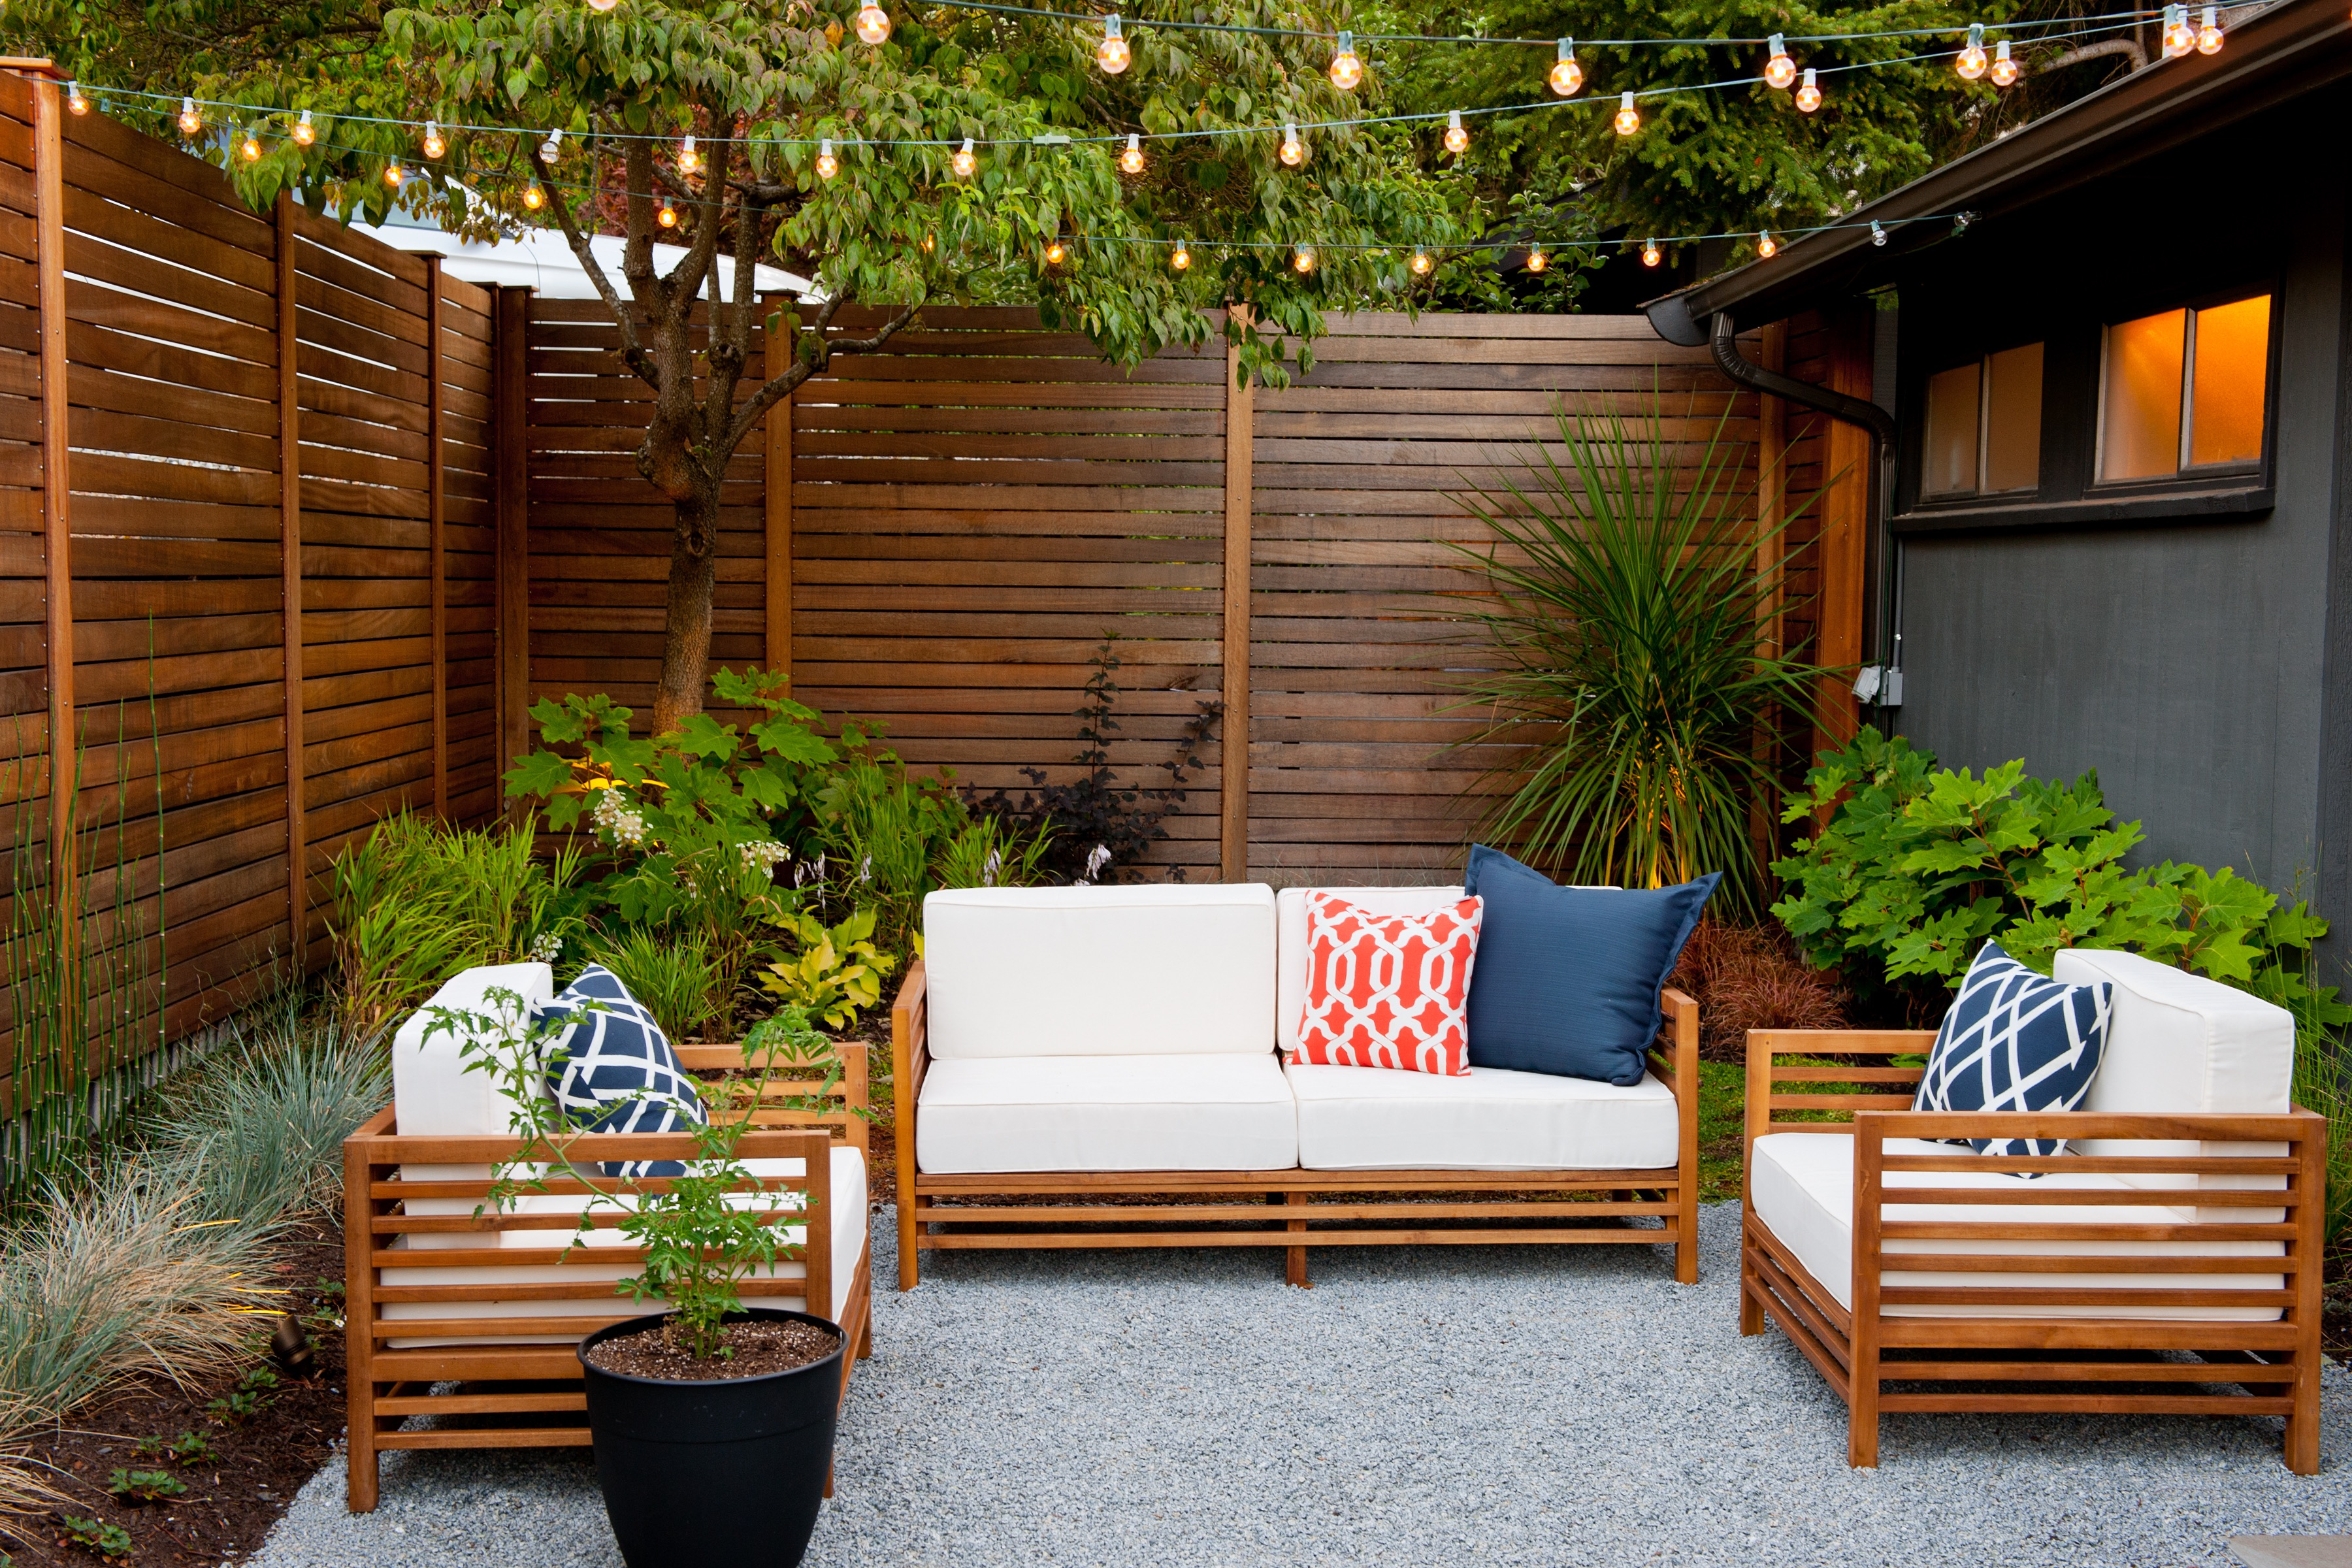 Cozy Minimalist Furniture For Outdoor Seating Area (Image 4 of 15)